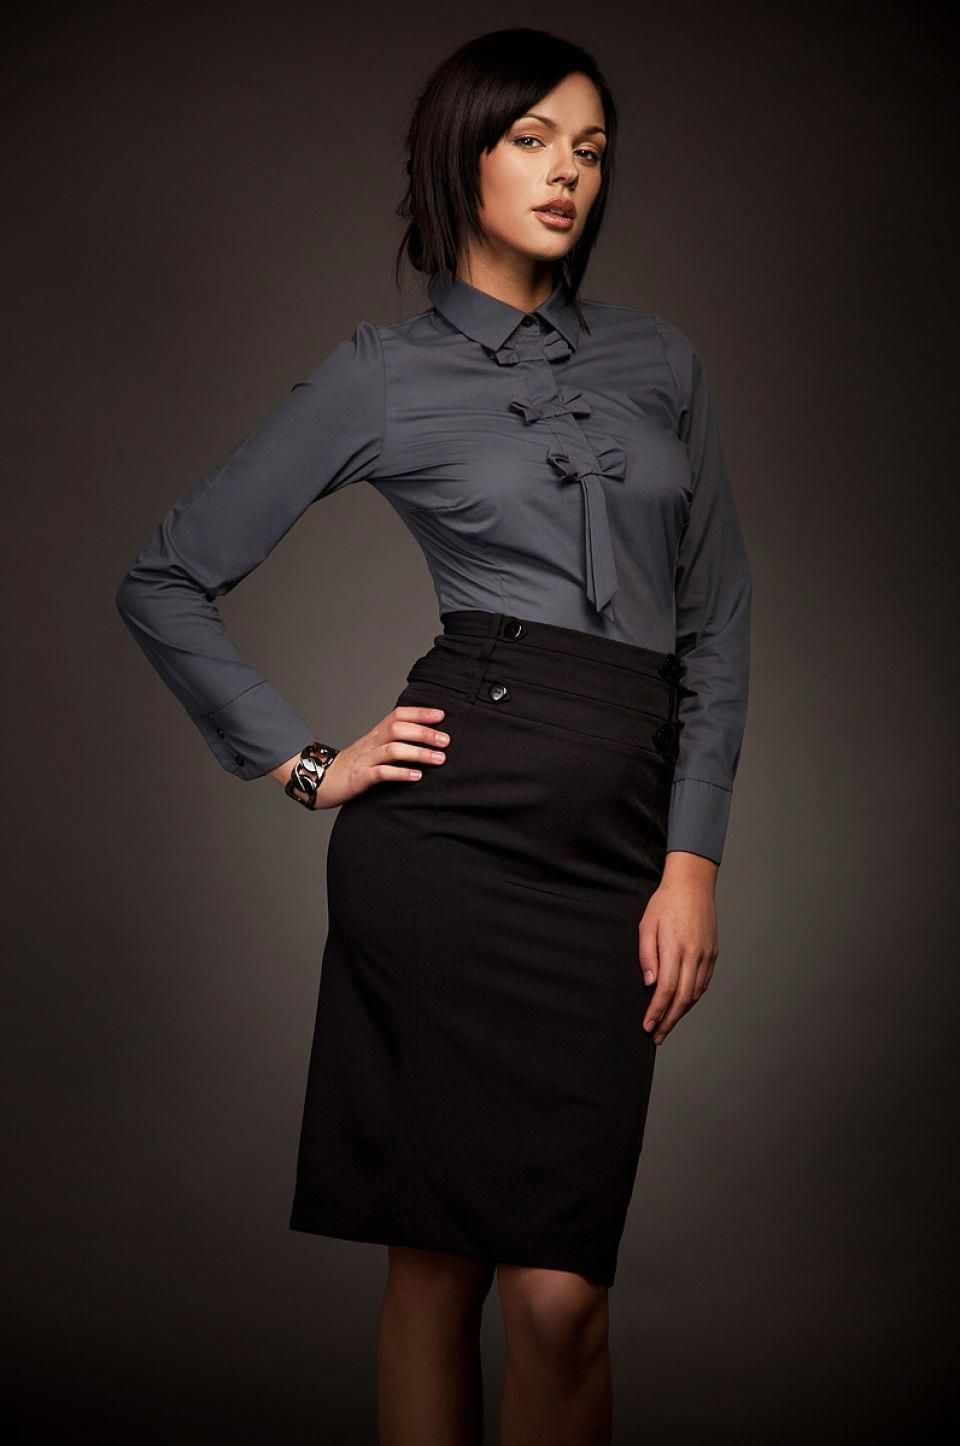 business attire for women #BUSINESSATTIRE #businessattireforyoungwomen